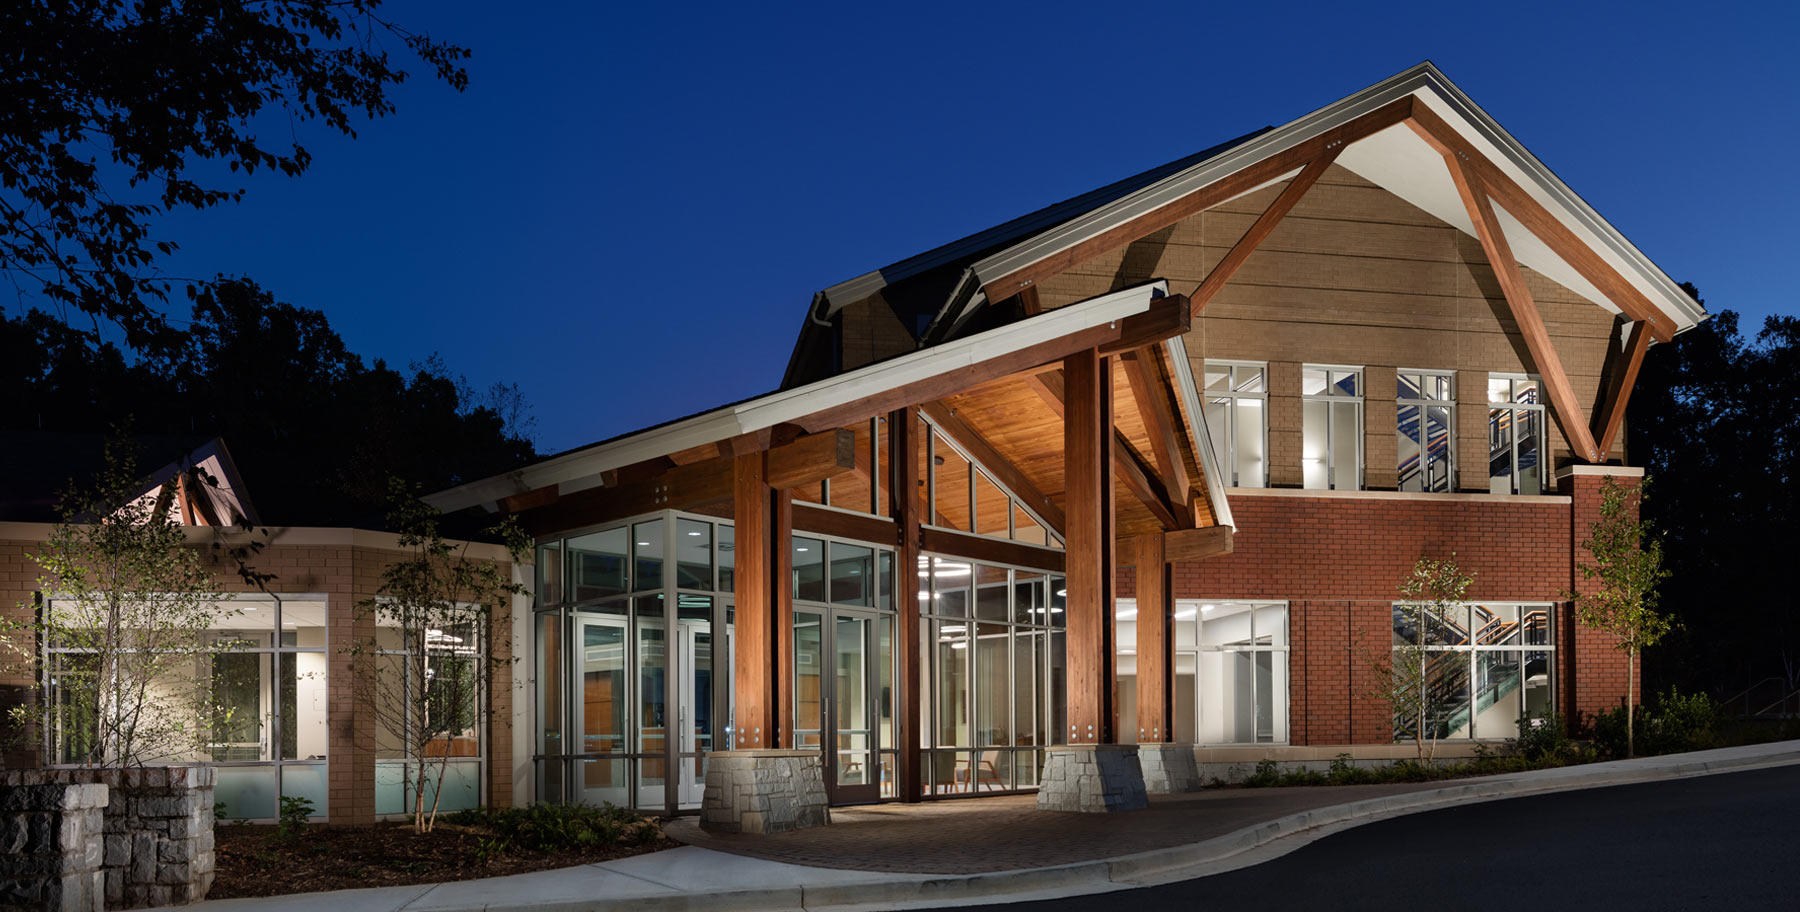 A Collaborative Home : The Center for Molecular Medicine Opens to Accolades at The University of Georgia